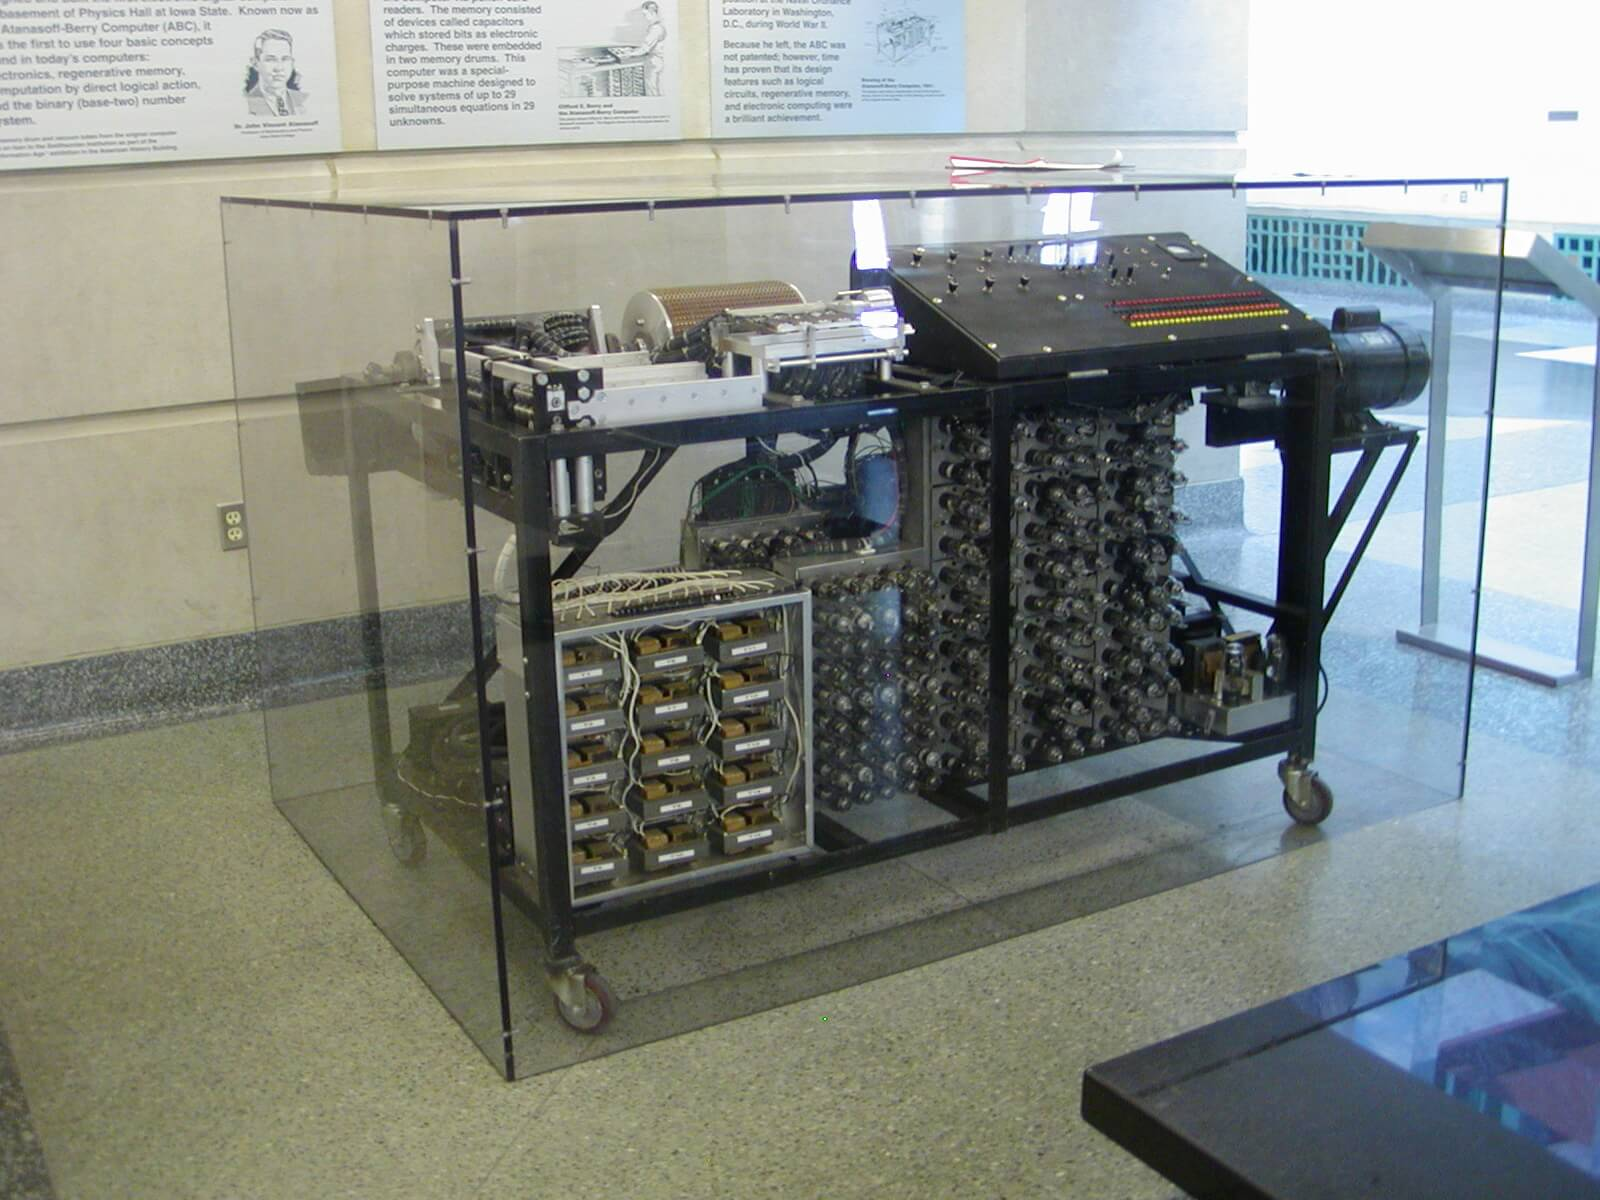 Atanasoff Berry Computer the first electric computer inveted